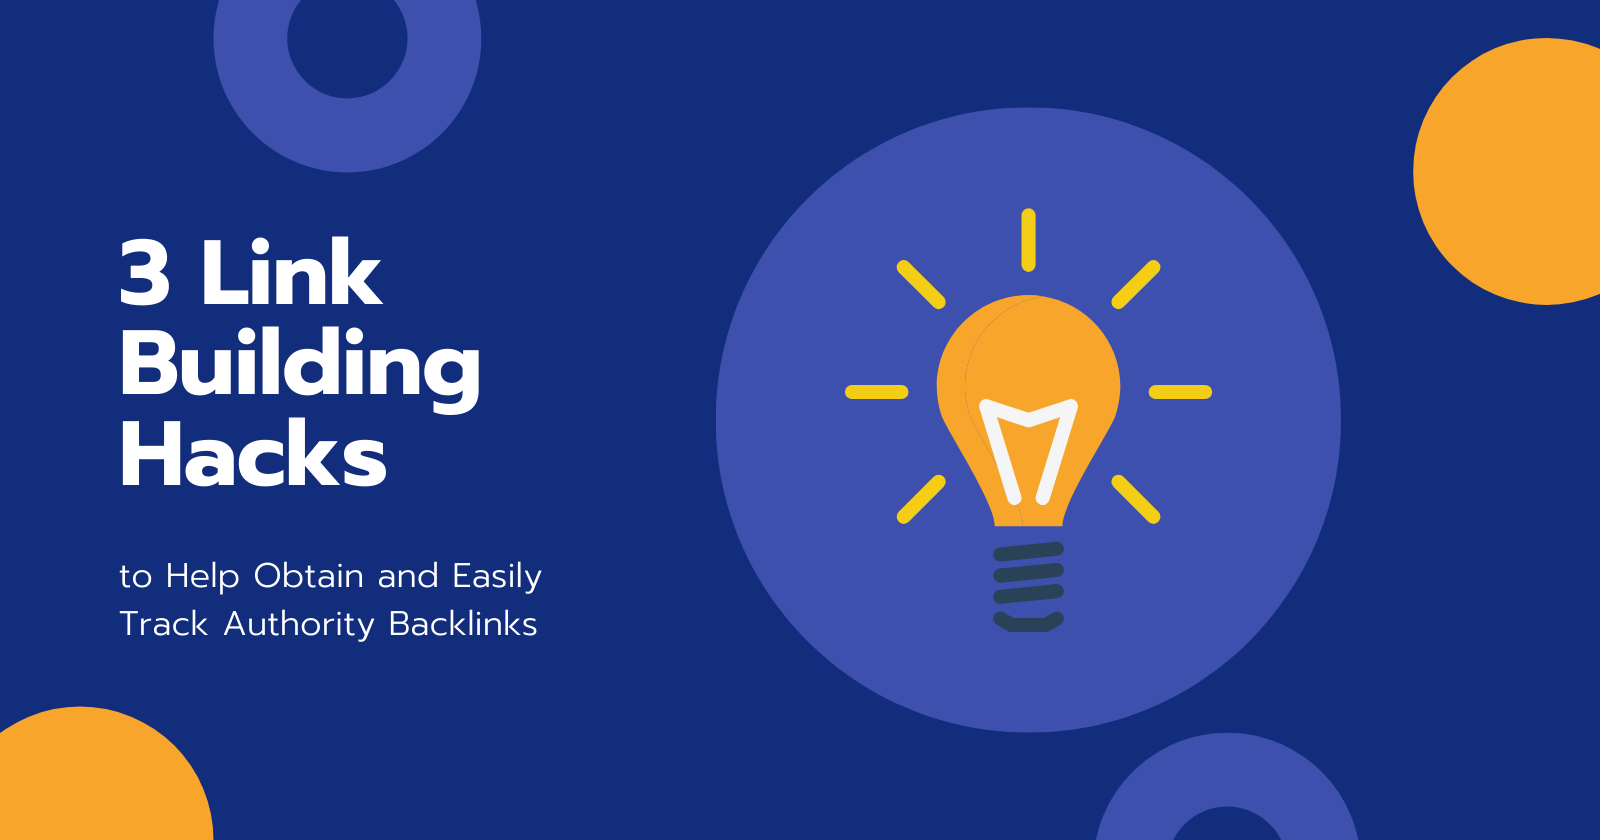 3 link building hacks to help obtain and easily track authority backlinks 5ed4f98eaccee